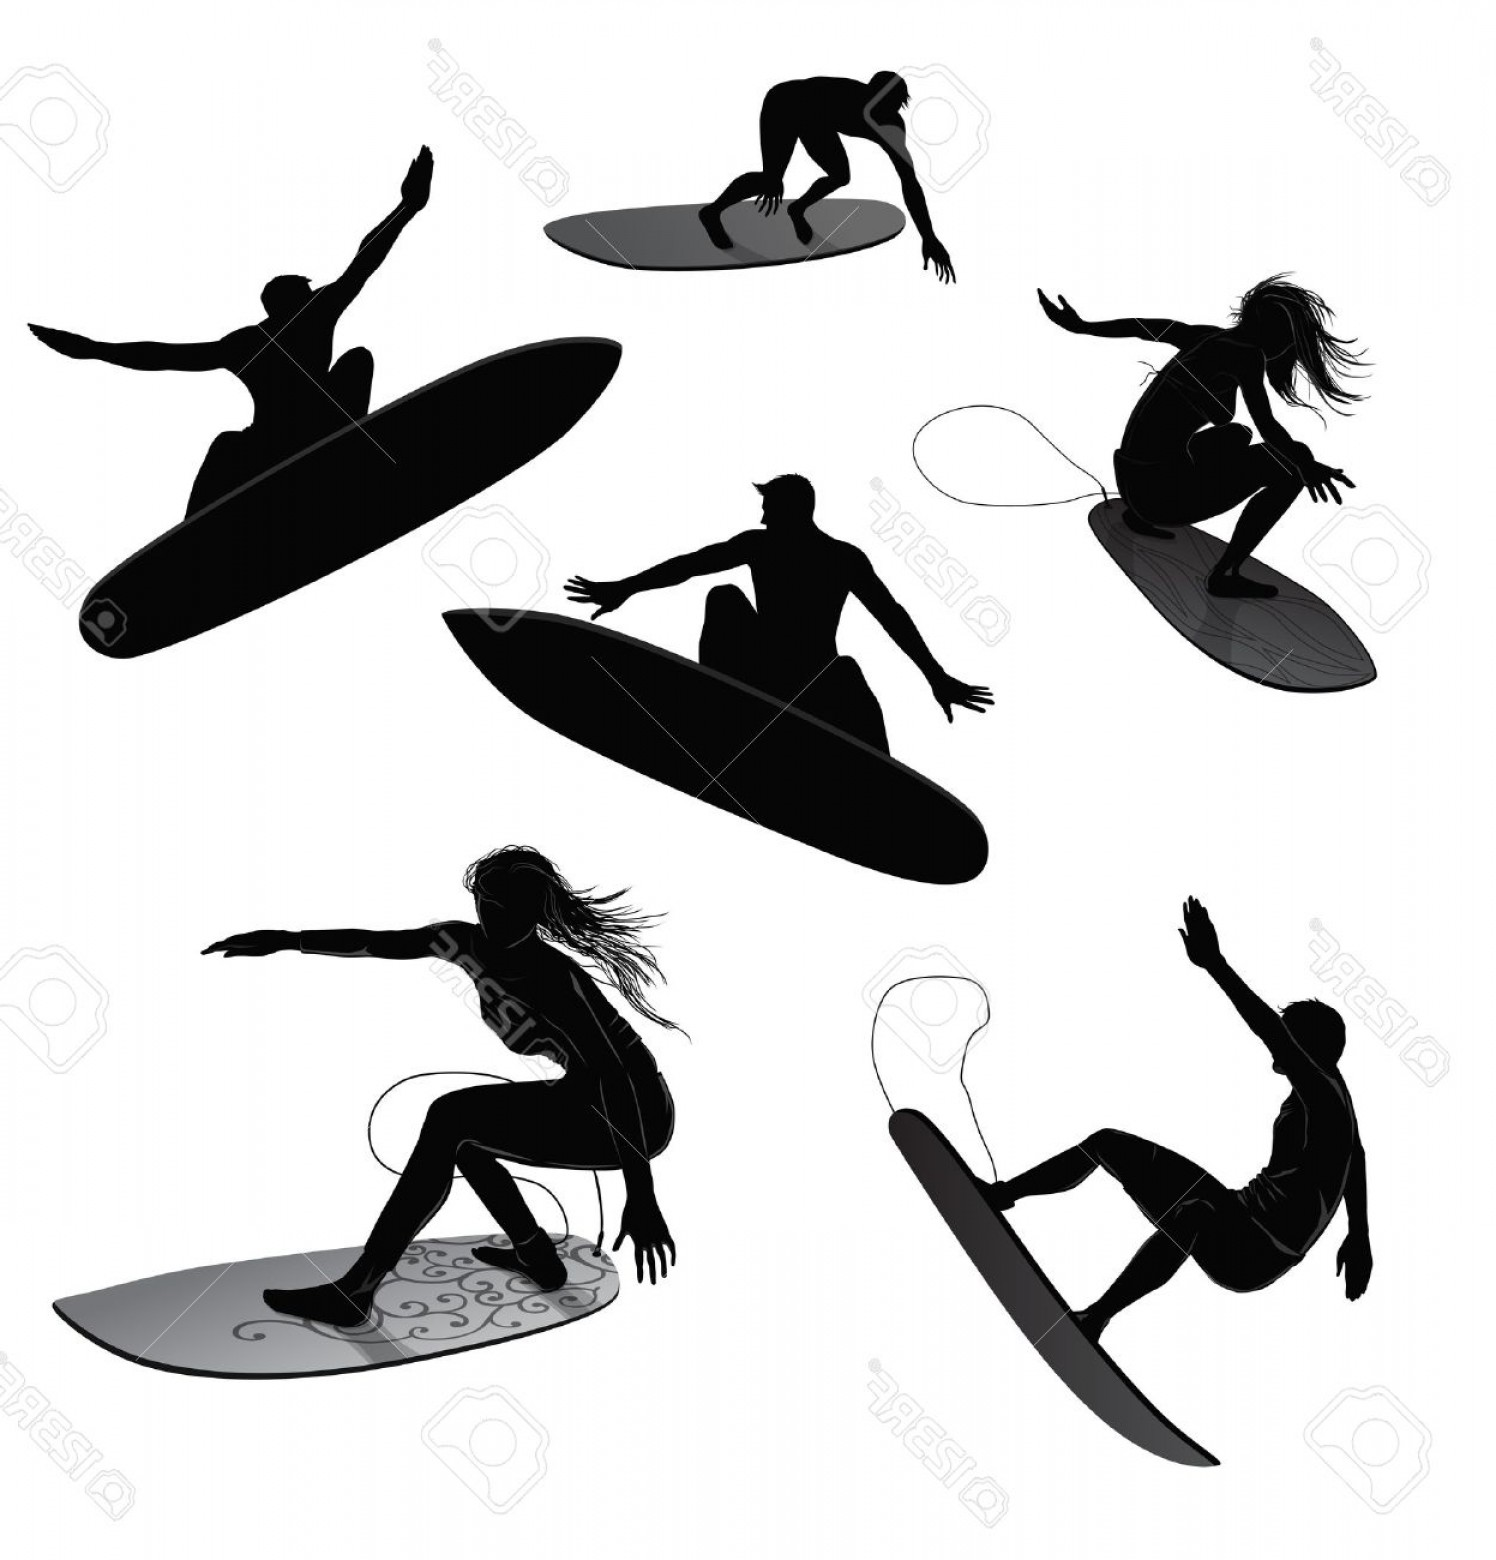 Waves With Surfer Silhouette Vector: Photoset Of Silhouettes Of Surfers